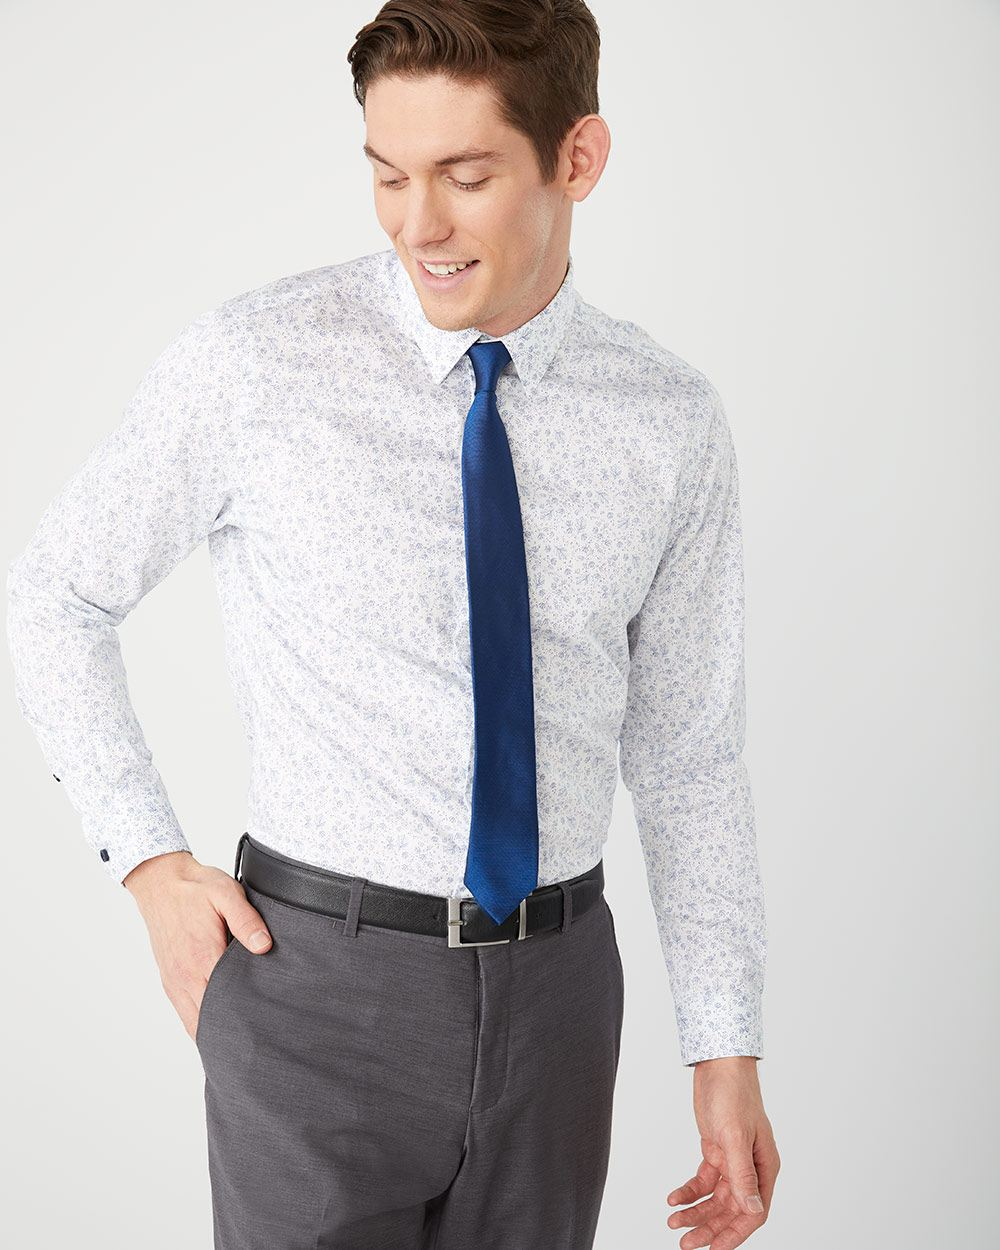 Athletic Fit Blue foliage Dress Shirt